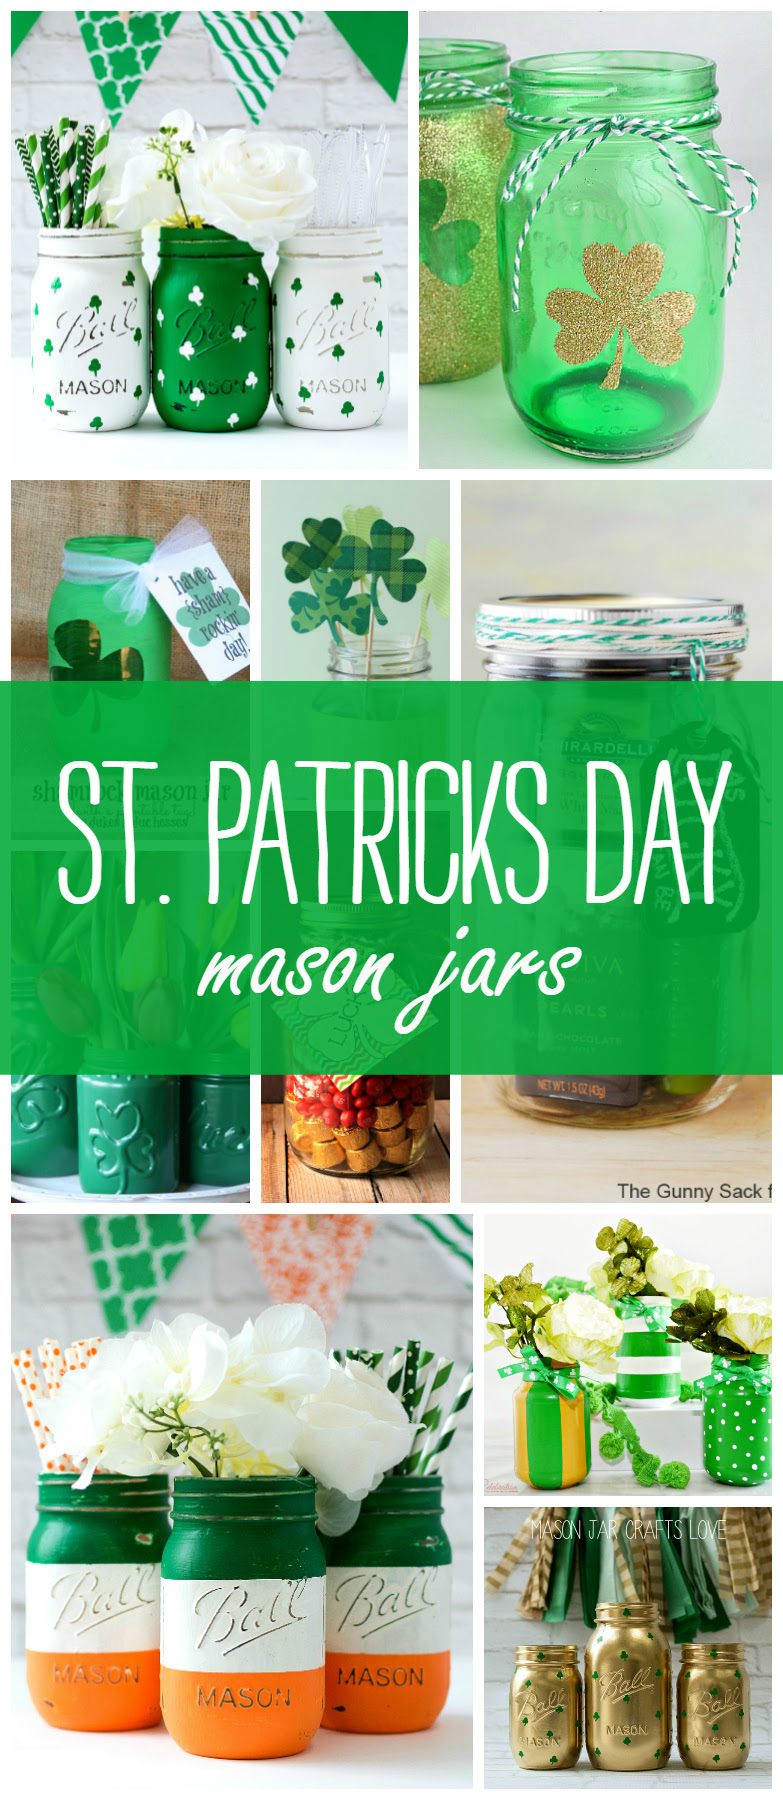 St Patricks Day Crafts Recipes In Mason Jars Mason Jar Crafts Love